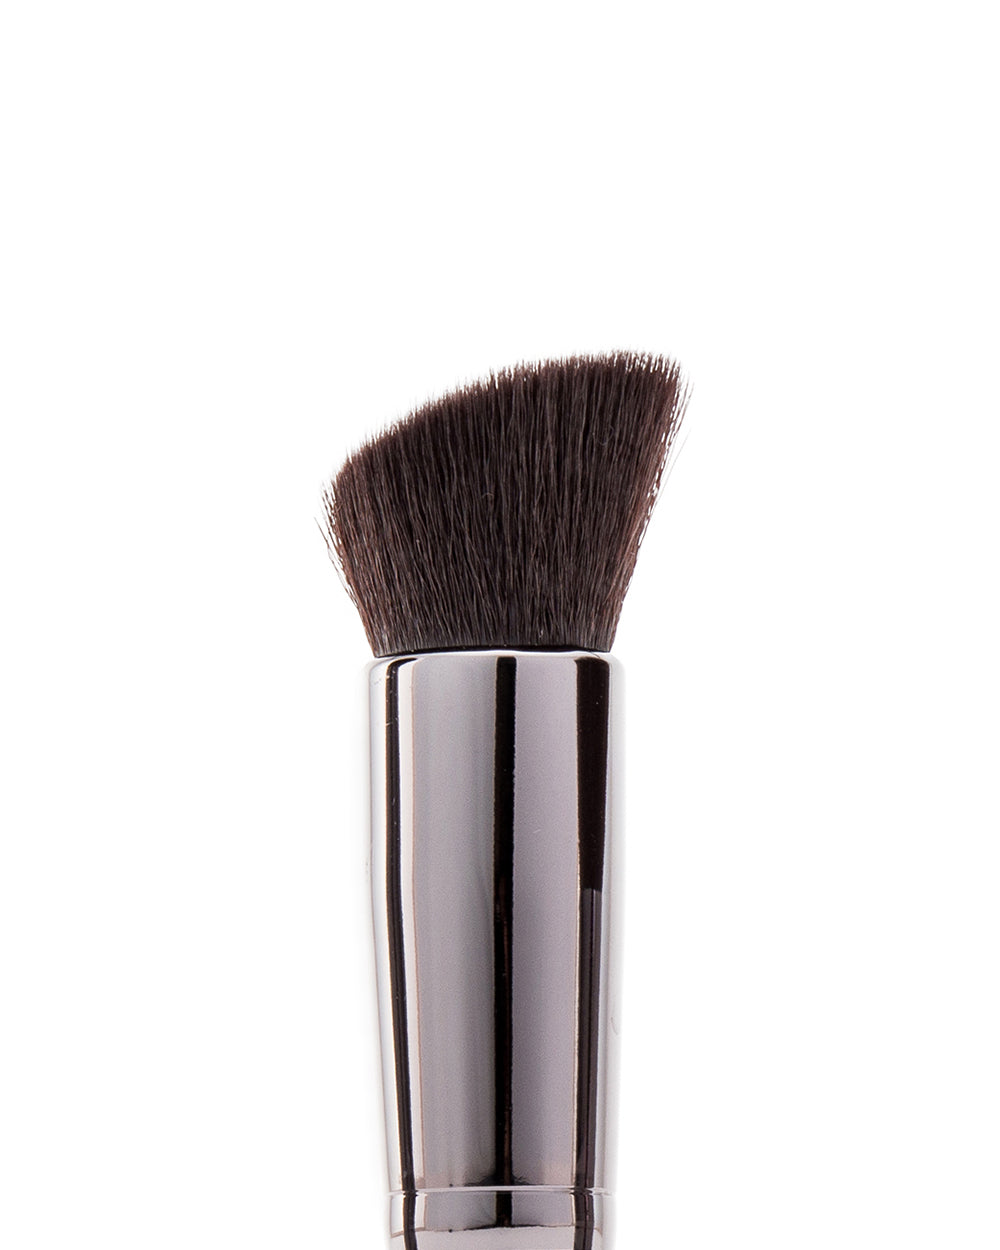 Liquid VO2 Brush - 202 Stubby Flat Foundation Brush